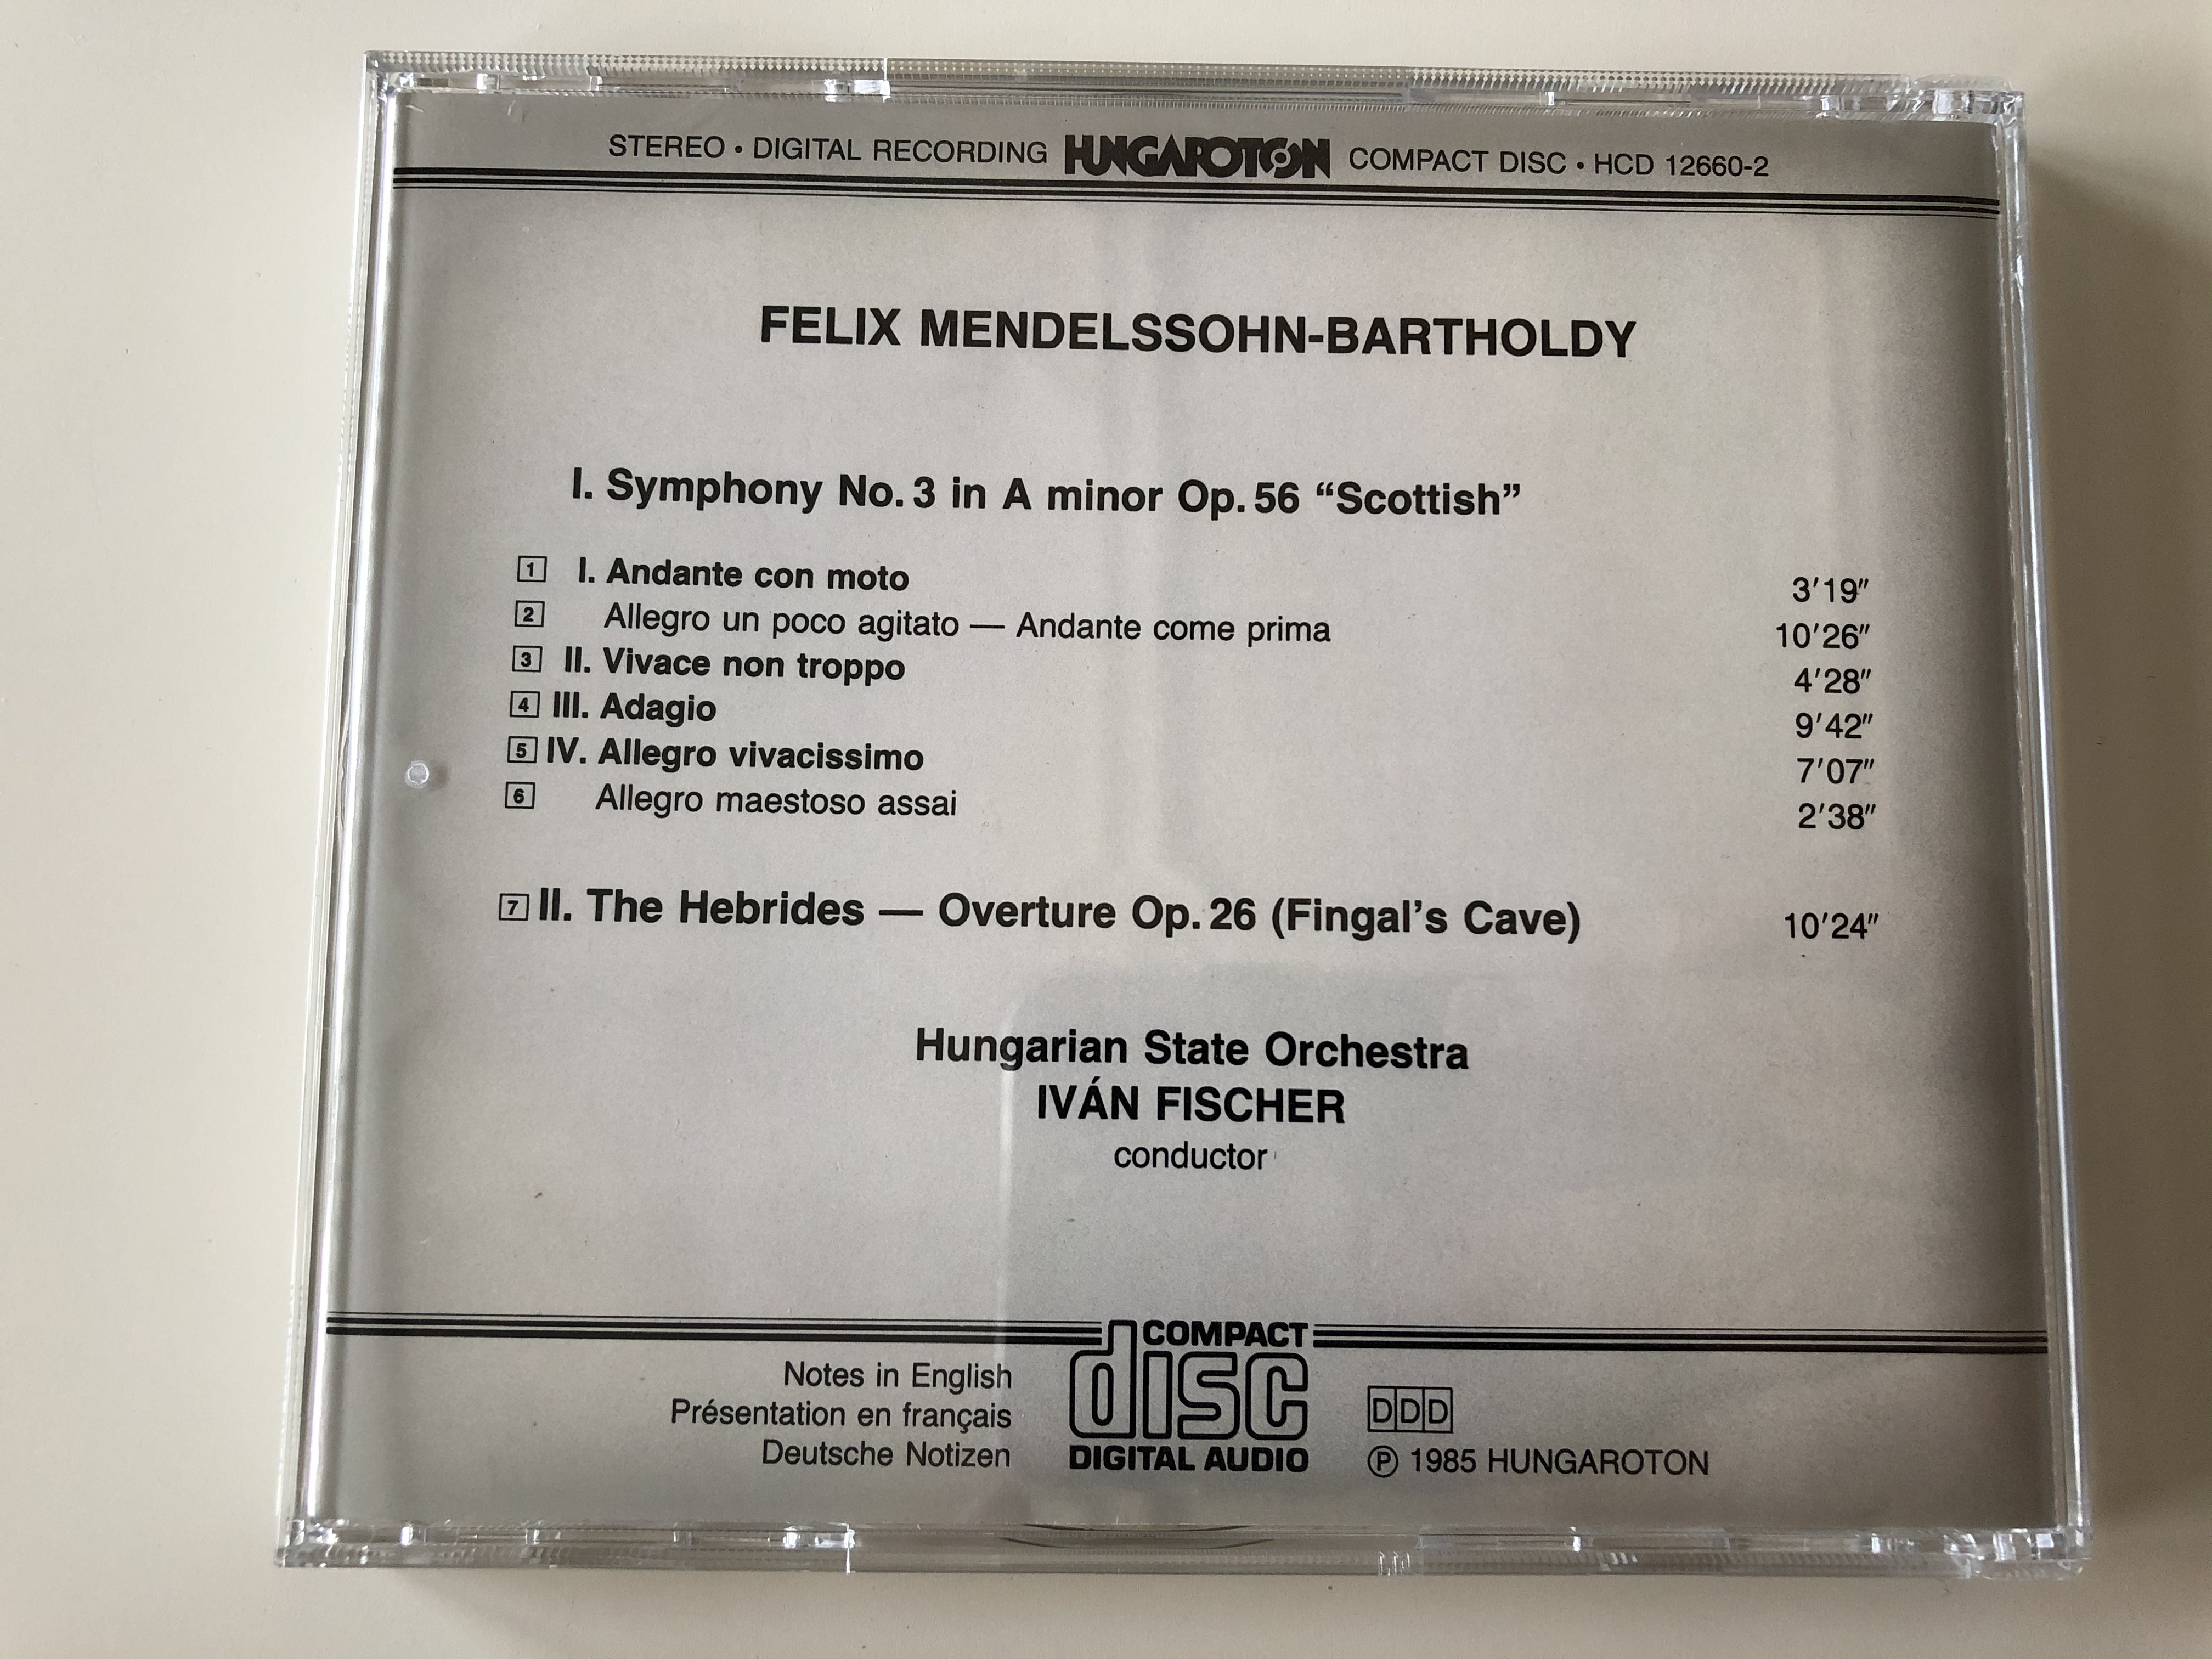 mendelssohn-symphony-no.-3-in-a-minor-scottish-the-hebrides-overture-hungarian-state-orchestra-iv-n-fischer-hungaroton-audio-cd-1985-stereo-hcd-12660-2-7-.jpg